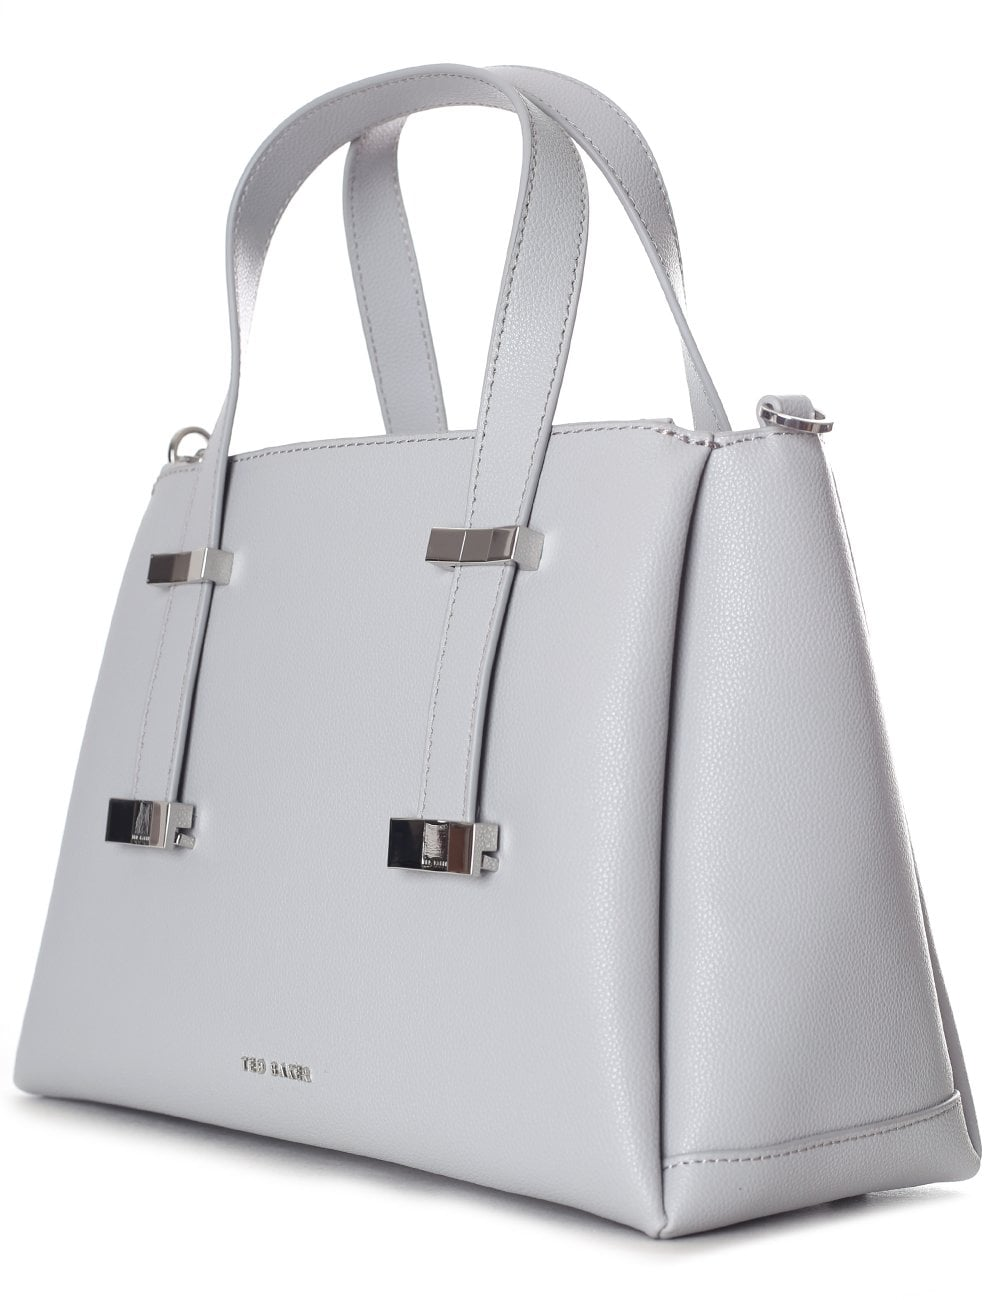 62b6fe5bf63 Ted Baker Women's Julieet Bow Adjustable Handle Small Tote